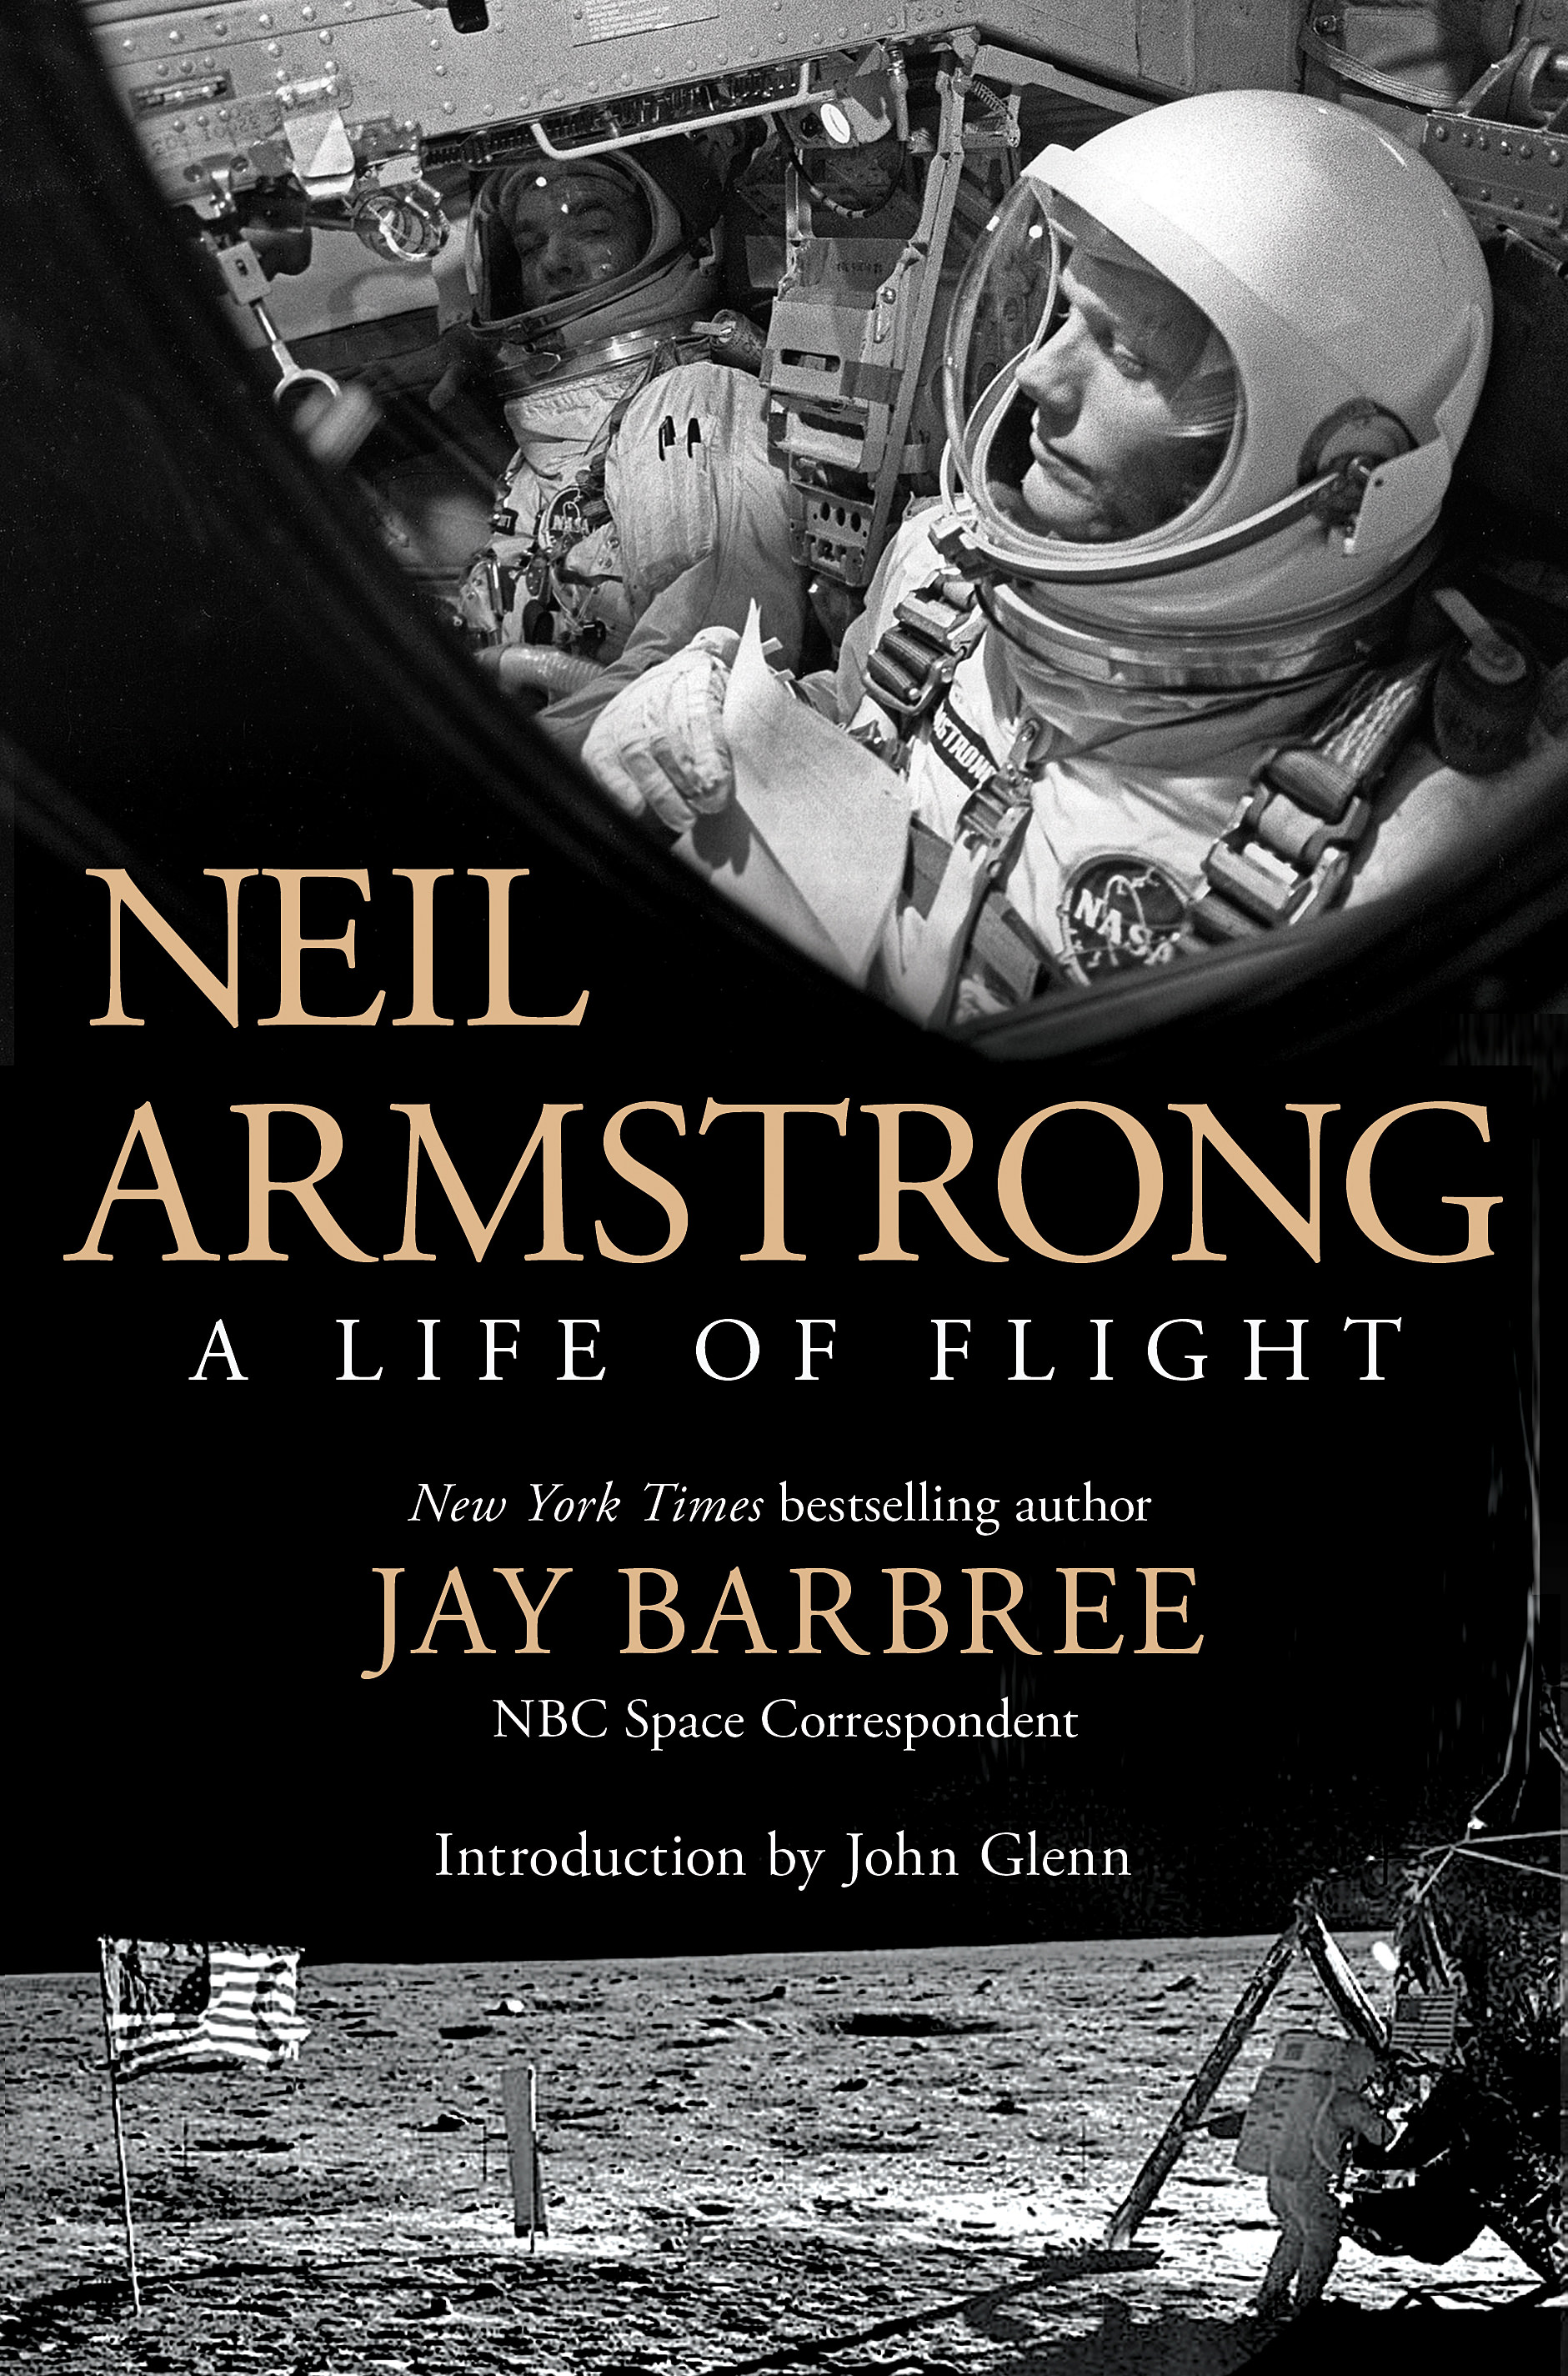 Neil Armstrong - A Life of Flight; by Jay Barbree